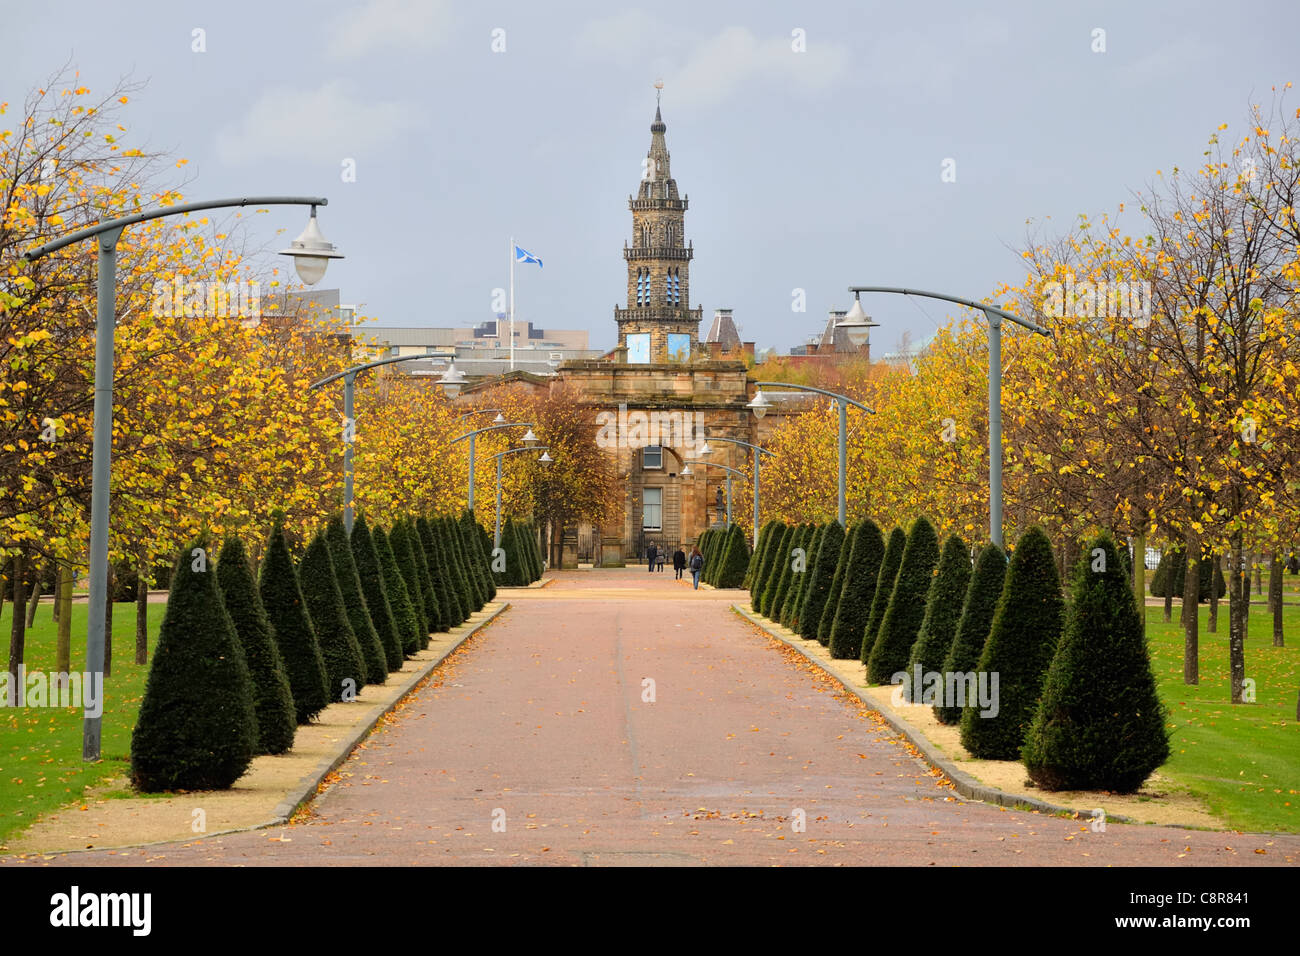 Avenue of small conifer trees line the walkway towards the McLennan Arch in Glasgow Green - Stock Image